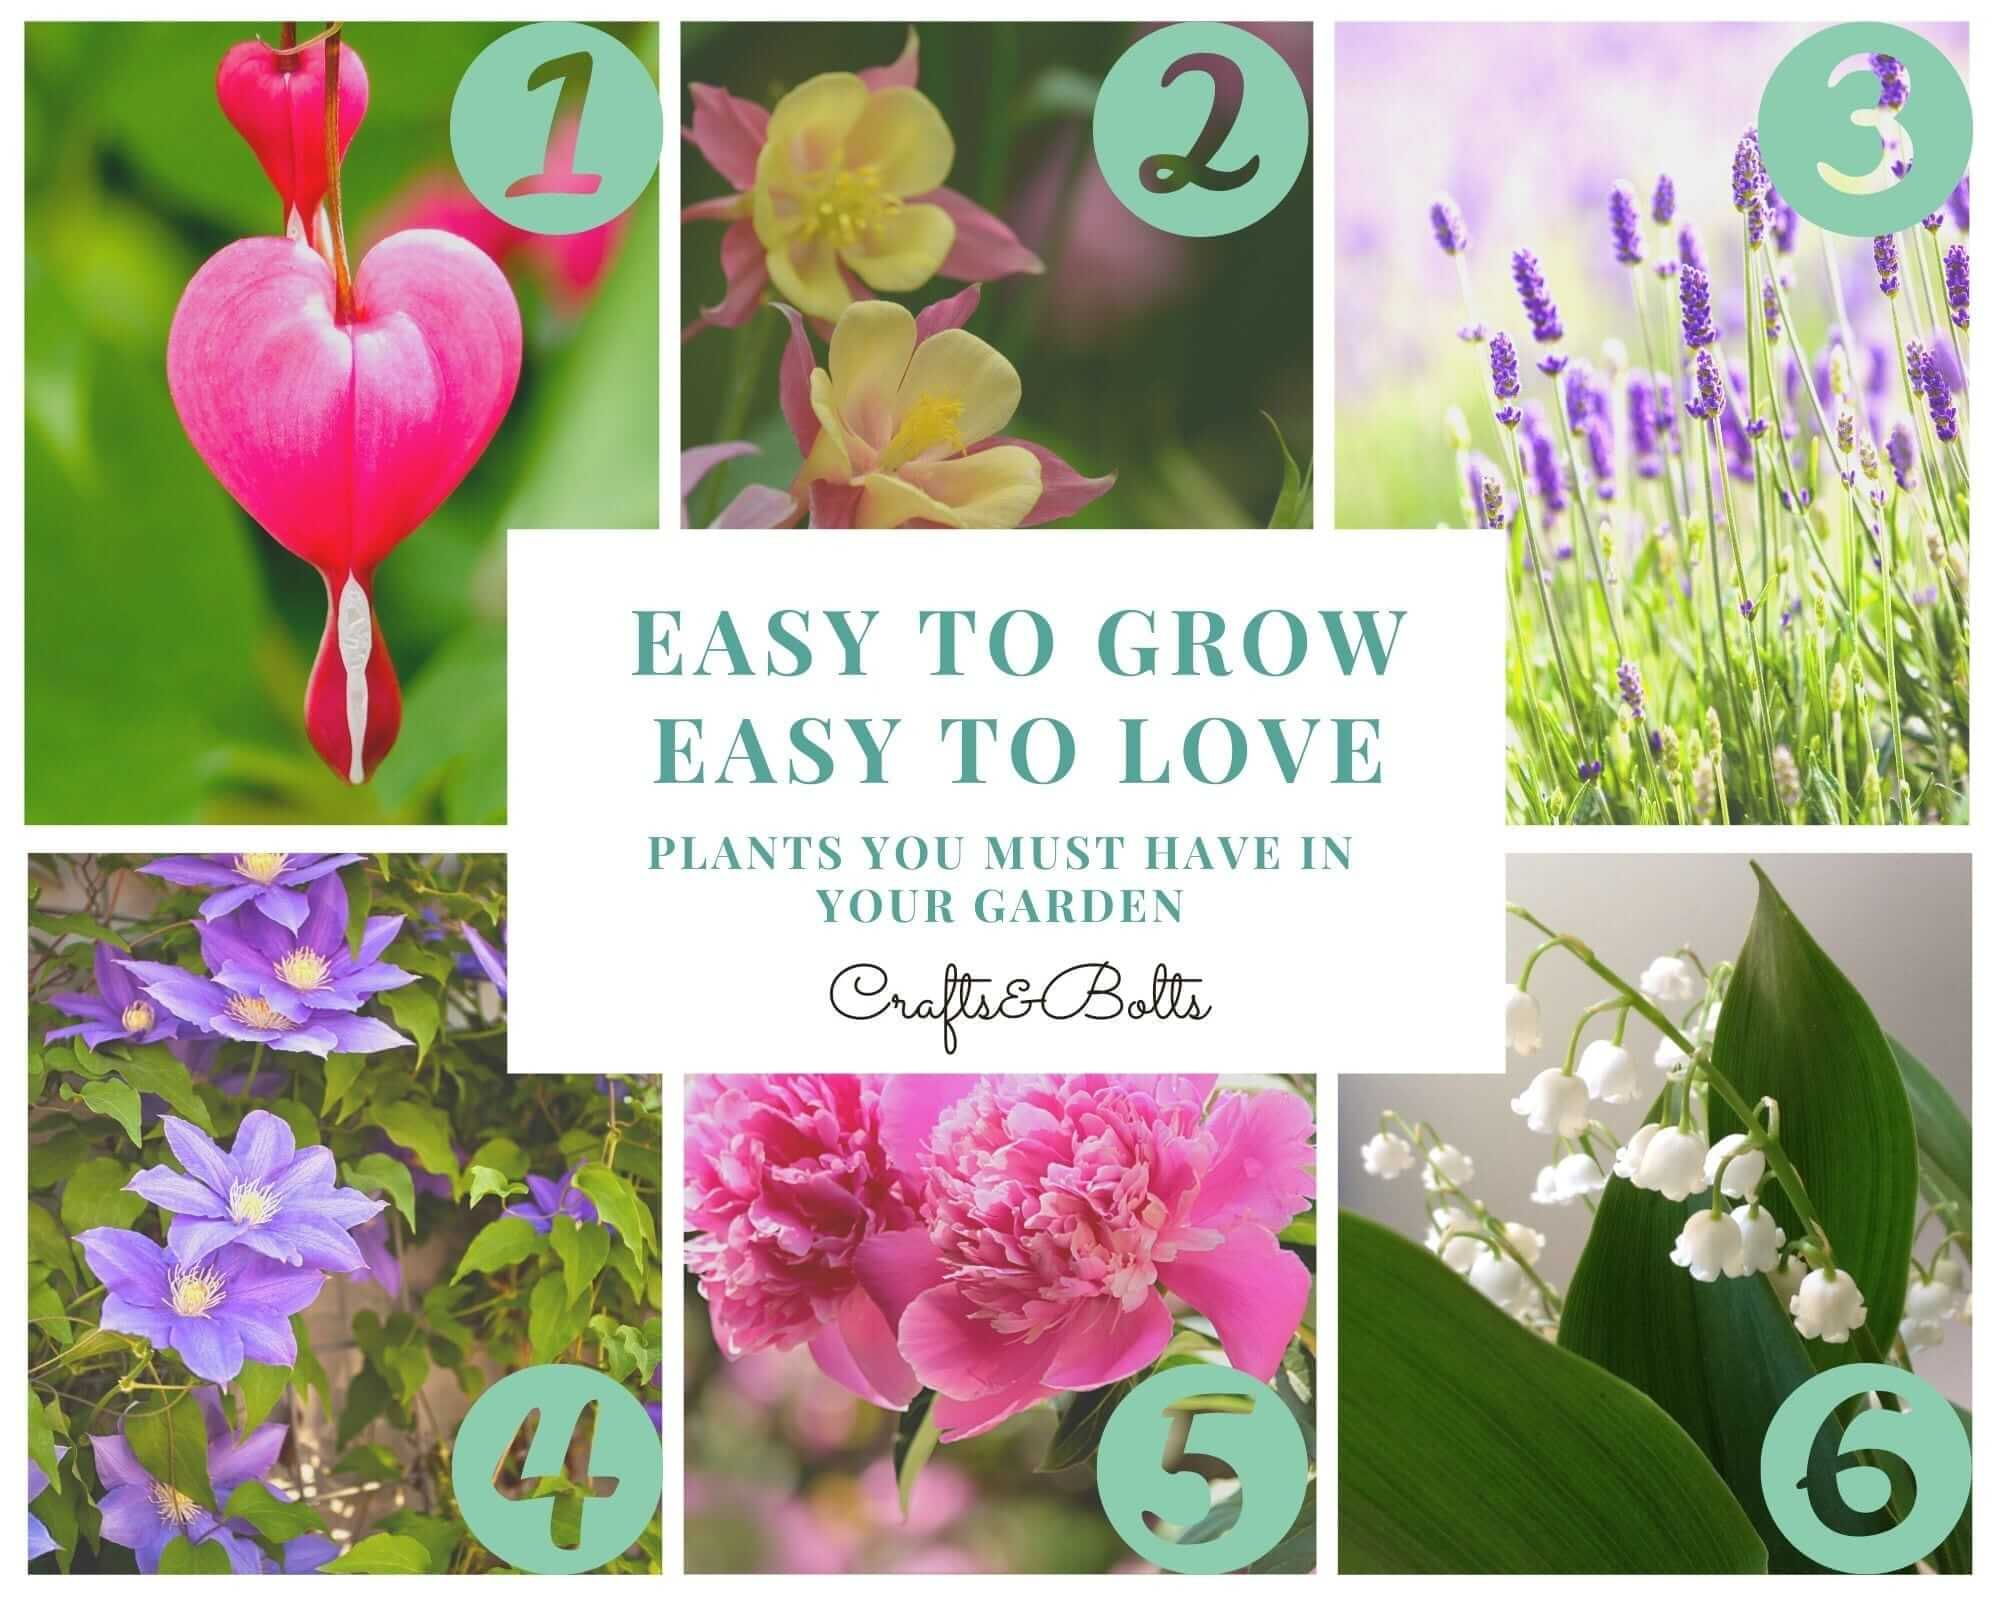 Easy to grow easy to love